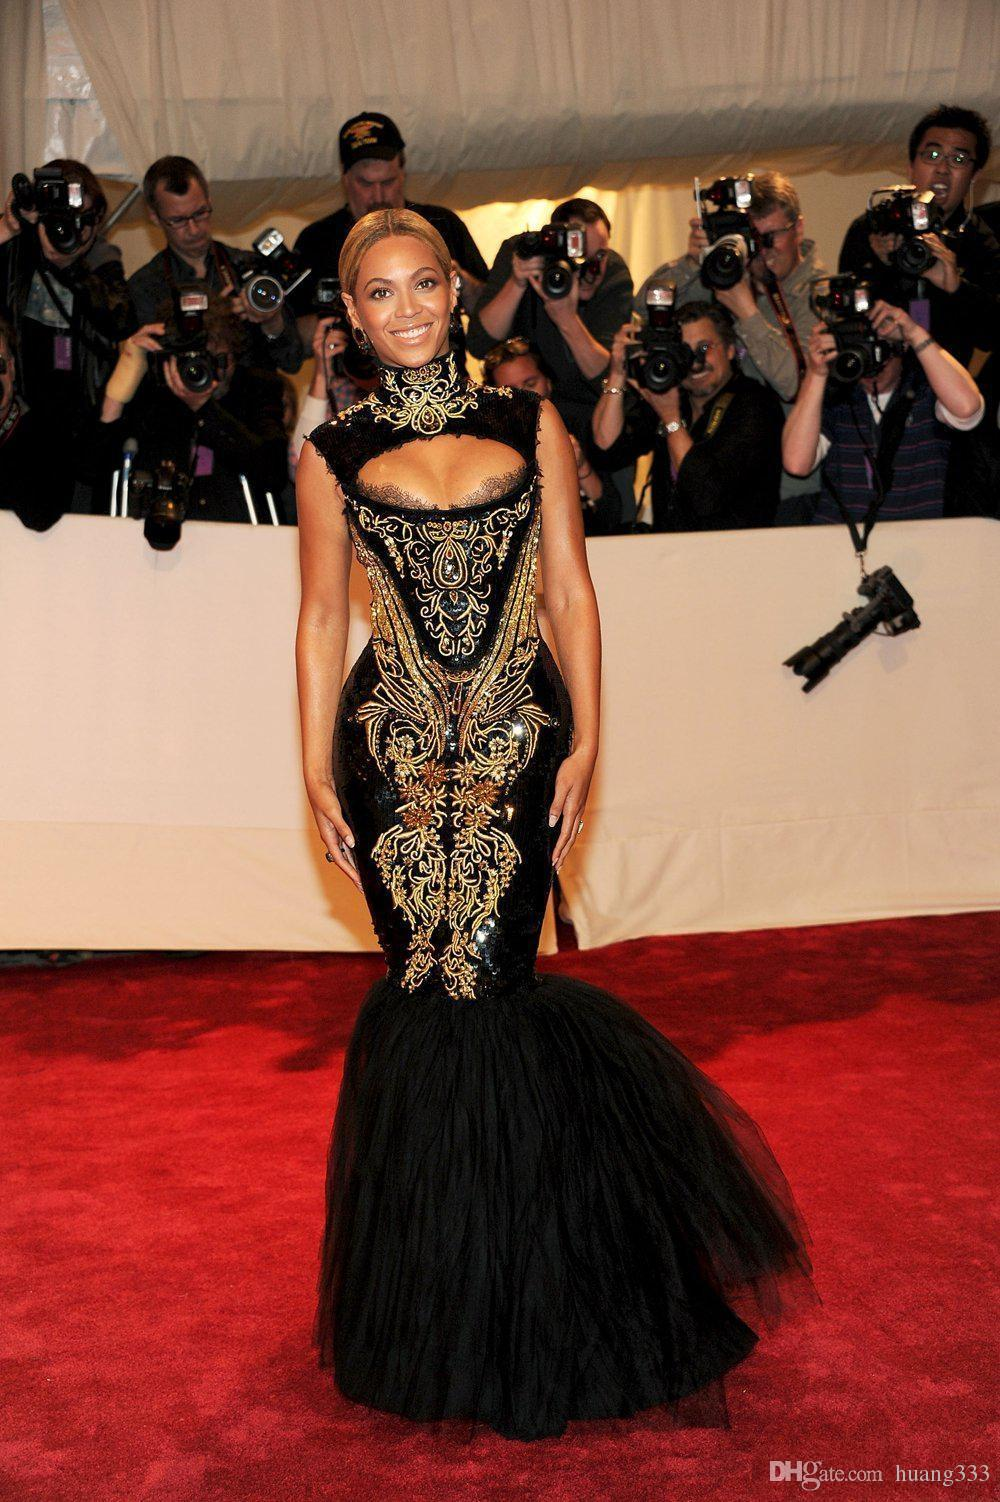 7181ce98ff7 2019 New Fashion Hot Custom Made Sexy Black And Gold Beyonce Mermaid Embroidery  Beaded Celebrity Dresses Evening Gowns Prom Dress 954 Prom Dresses  Wholesale ...